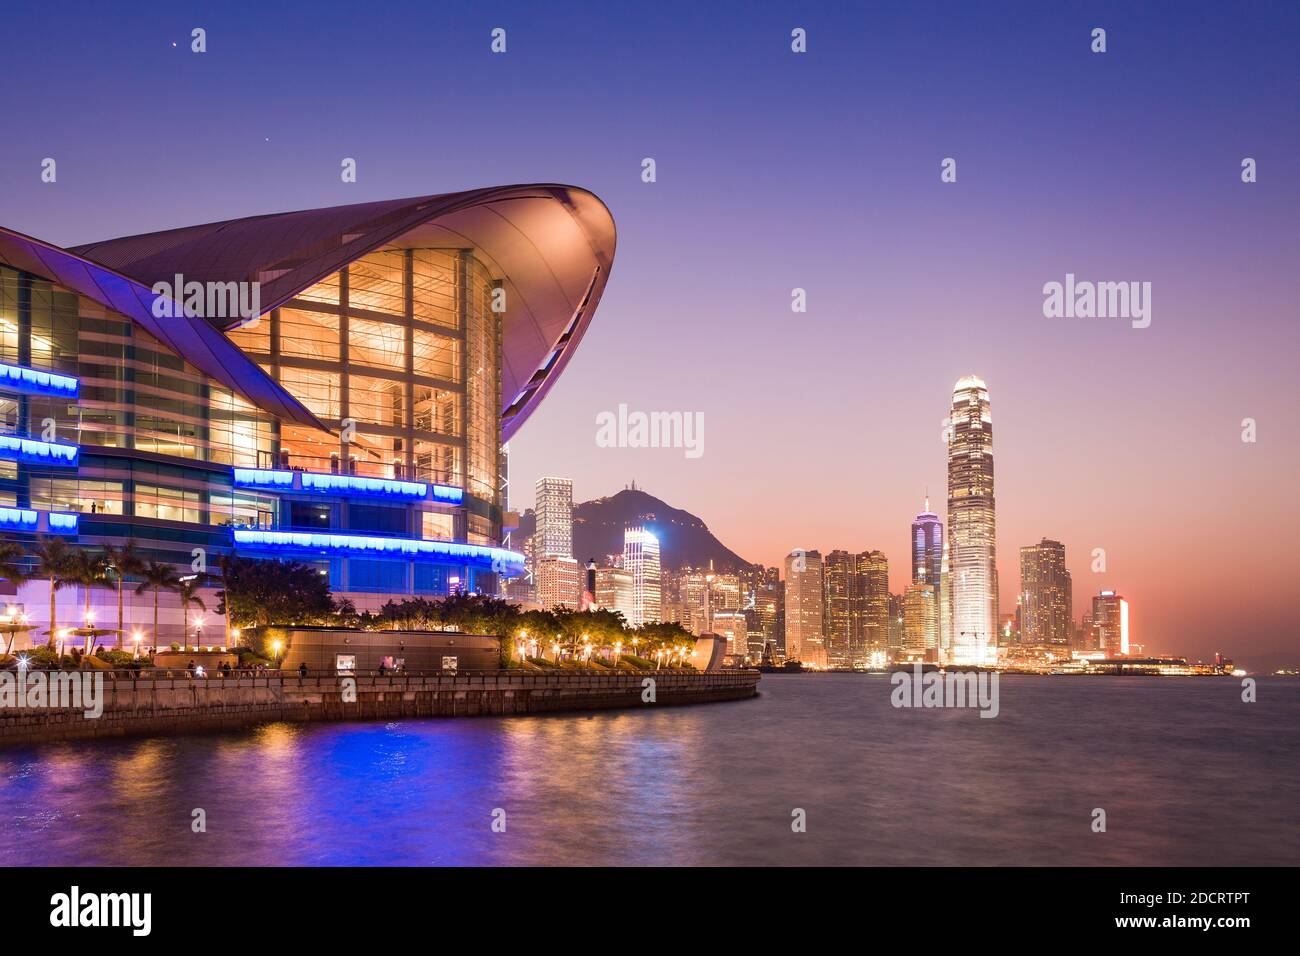 Cityscape of Hong Kong central district at night, China, Asia. Stock Photo